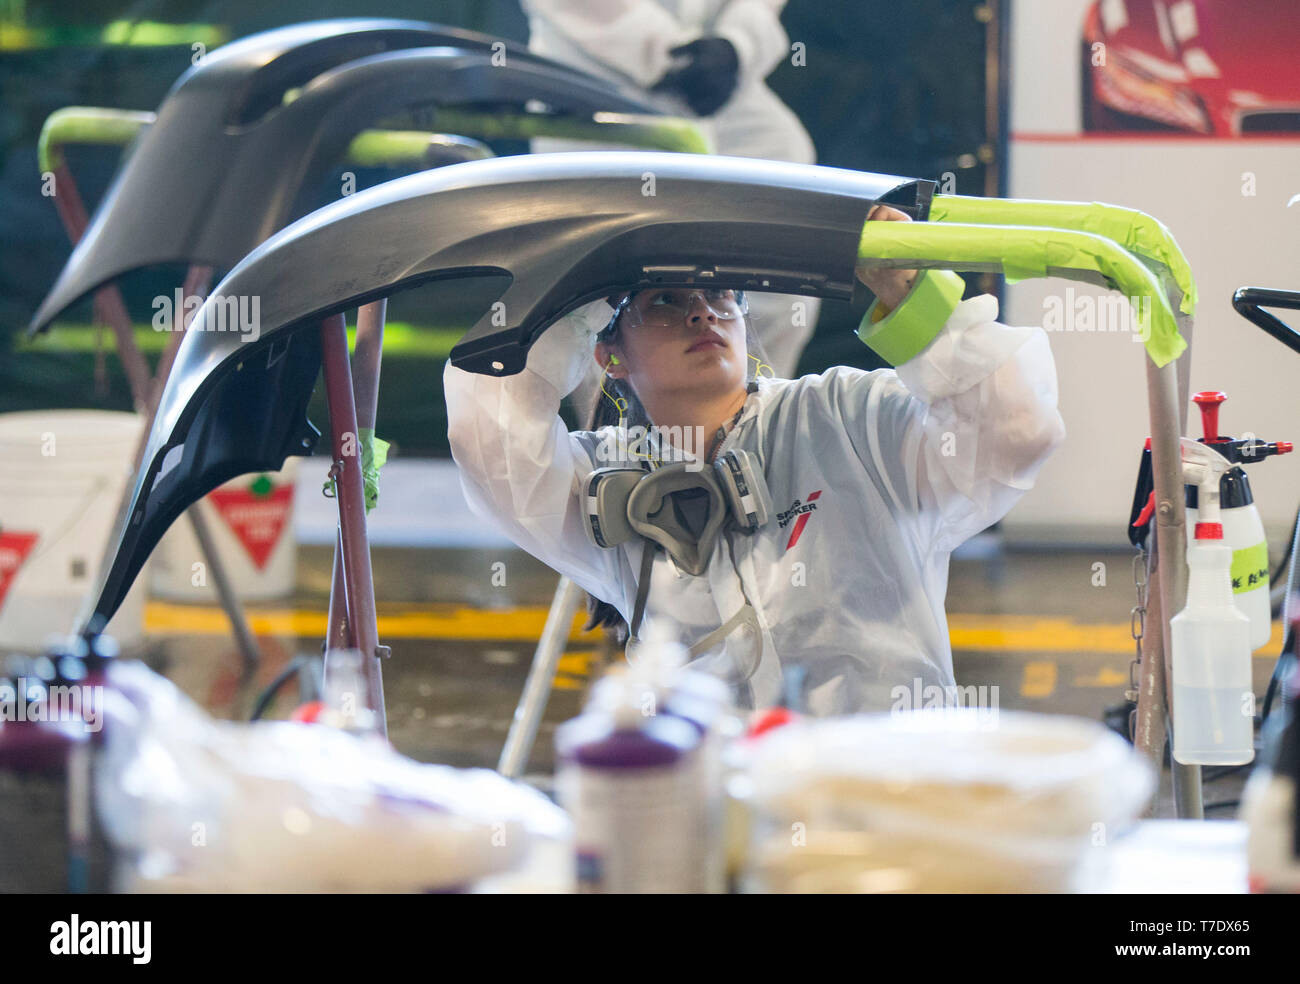 Toronto, Canada. 6th May, 2019. A student competes during the auto painting sector of the 2019 Skills Ontario Competition in Toronto, Canada, on May 6, 2019. The 2019 Skills Ontario Competition kicked off here on Monday, attracting more than 2,400 competitors. A broad range of skills and careers are represented at the three-day competition from across the manufacturing, transportation, construction, service, and technology sectors. Credit: Zou Zheng/Xinhua/Alamy Live News - Stock Image